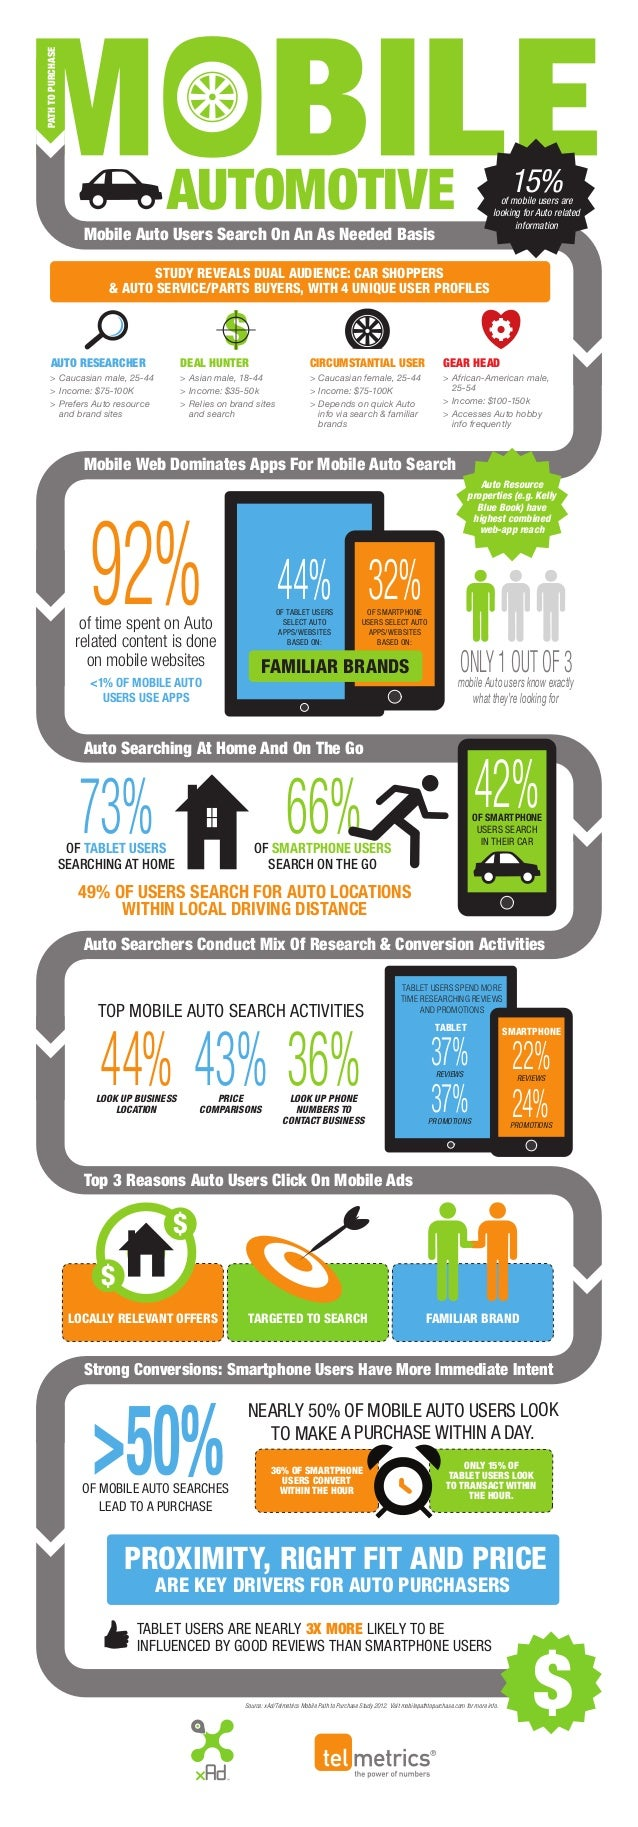 PATHTOPURCHASE Mobile Auto Users Search On An As Needed Basis Mobile Web Dominates Apps For Mobile Auto Search Auto Search...